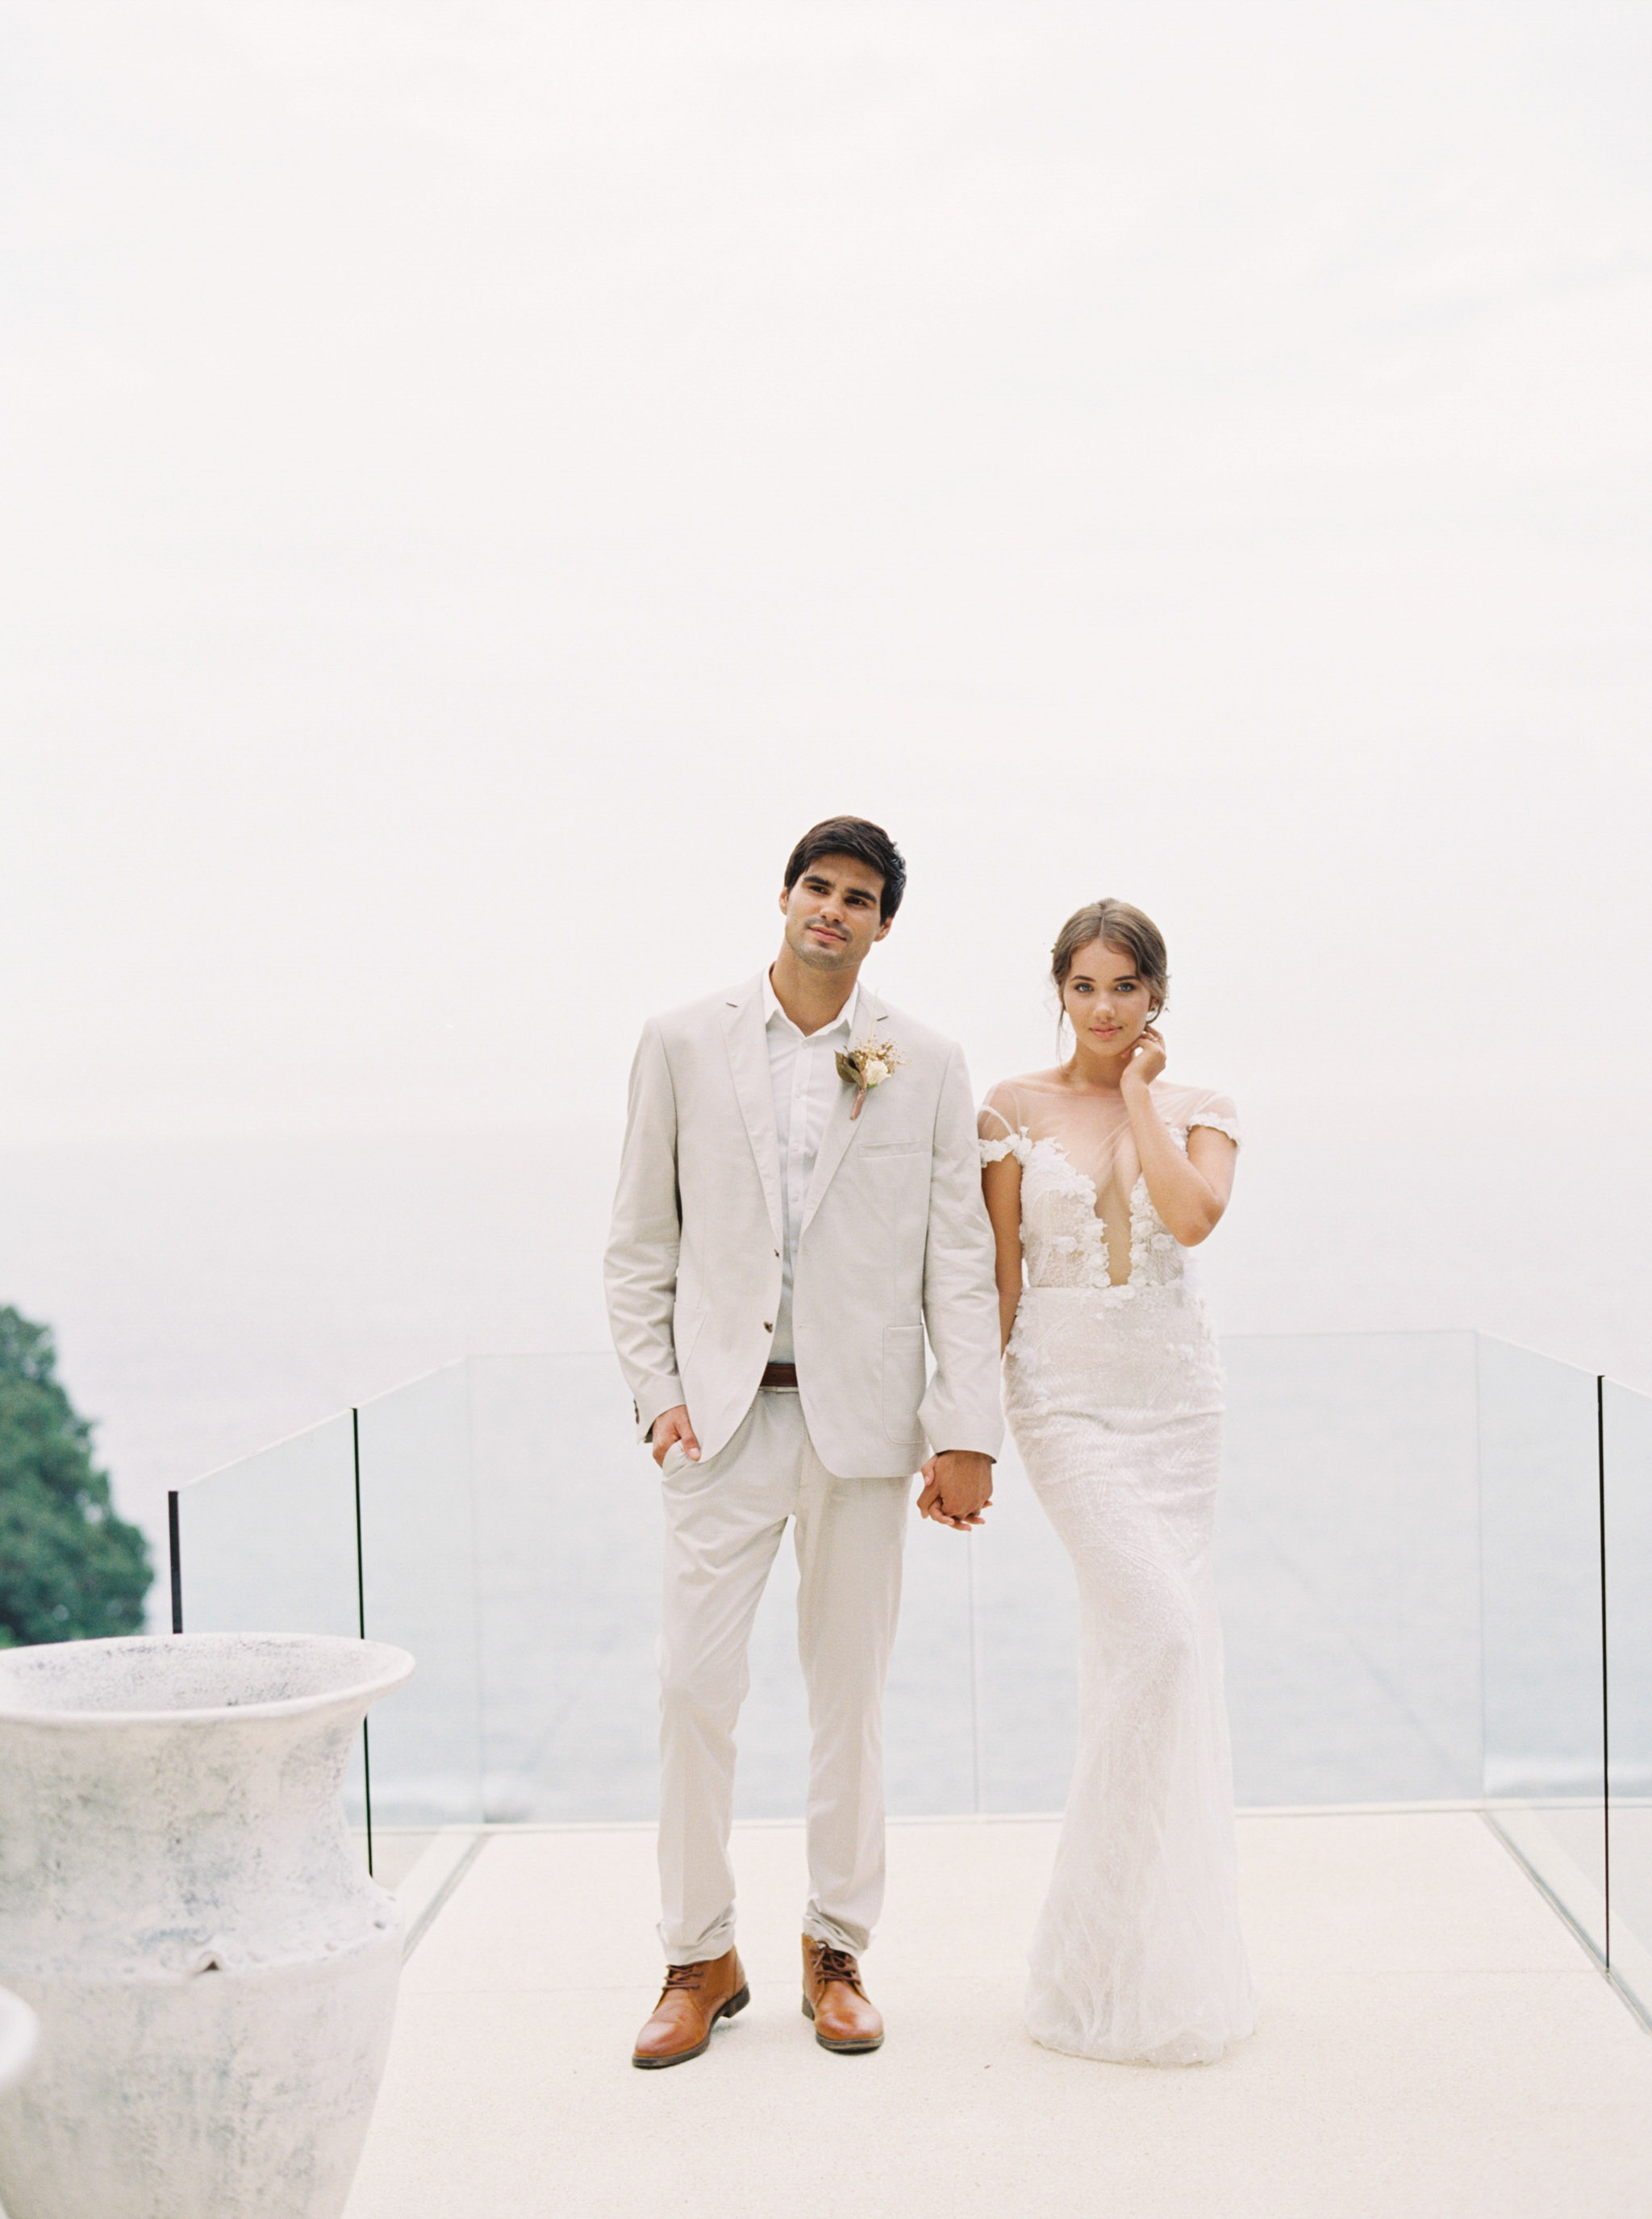 Destination Wedding Phuket Thailand Fine Art Film Photographer Sheri McMahon-00071-71.jpg